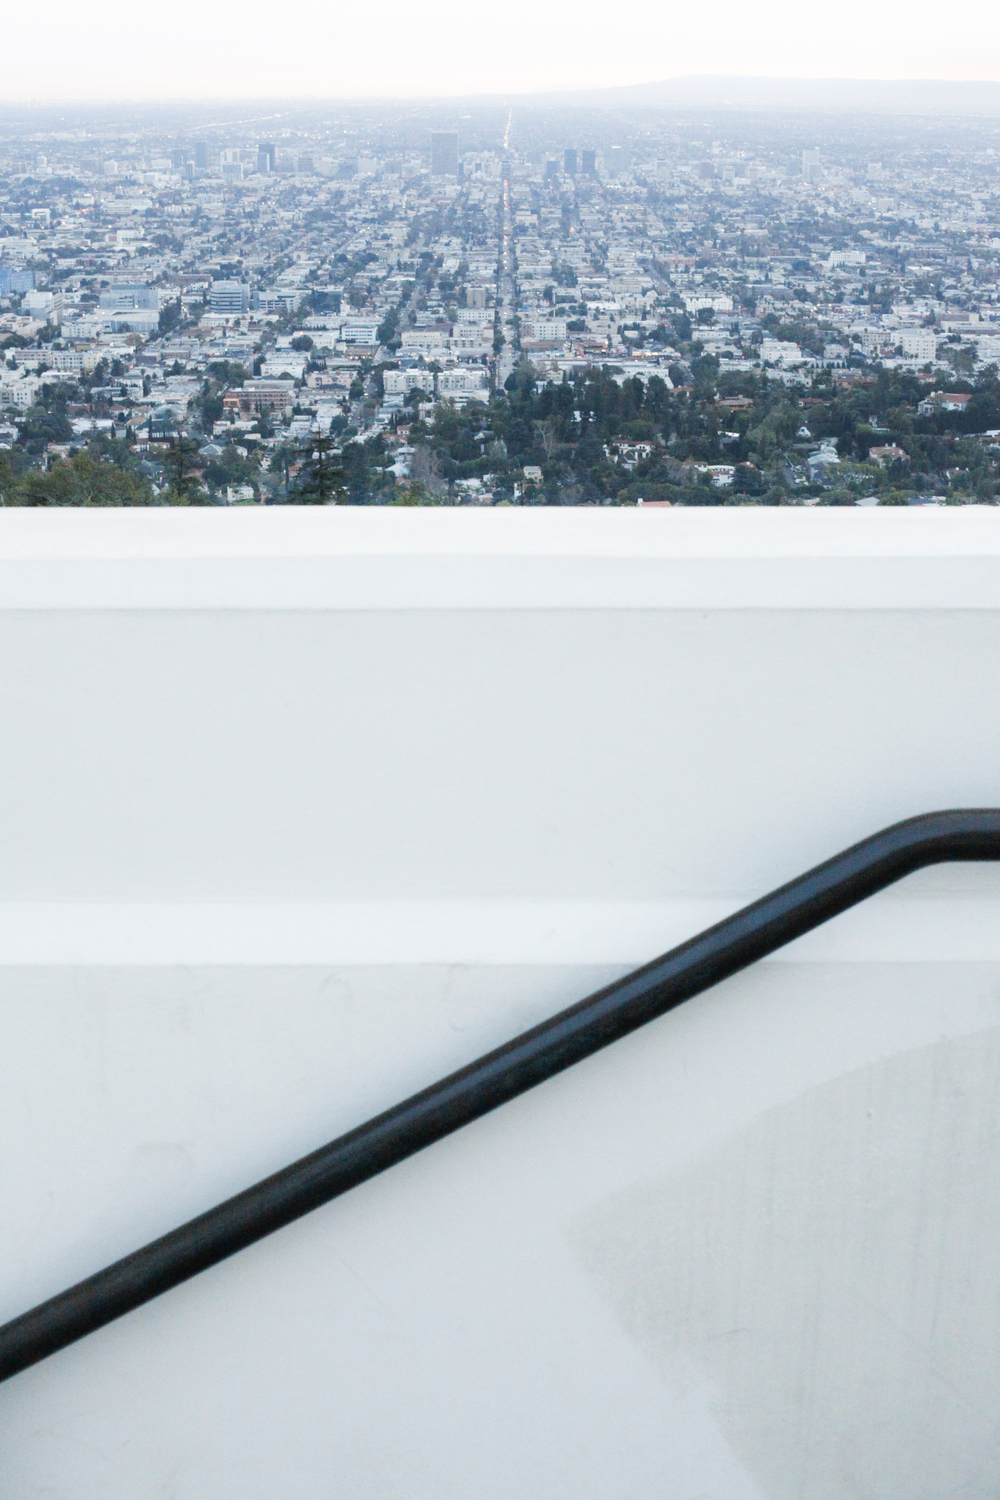 gRIFFITH oBSERVATORY_14 (4).jpg